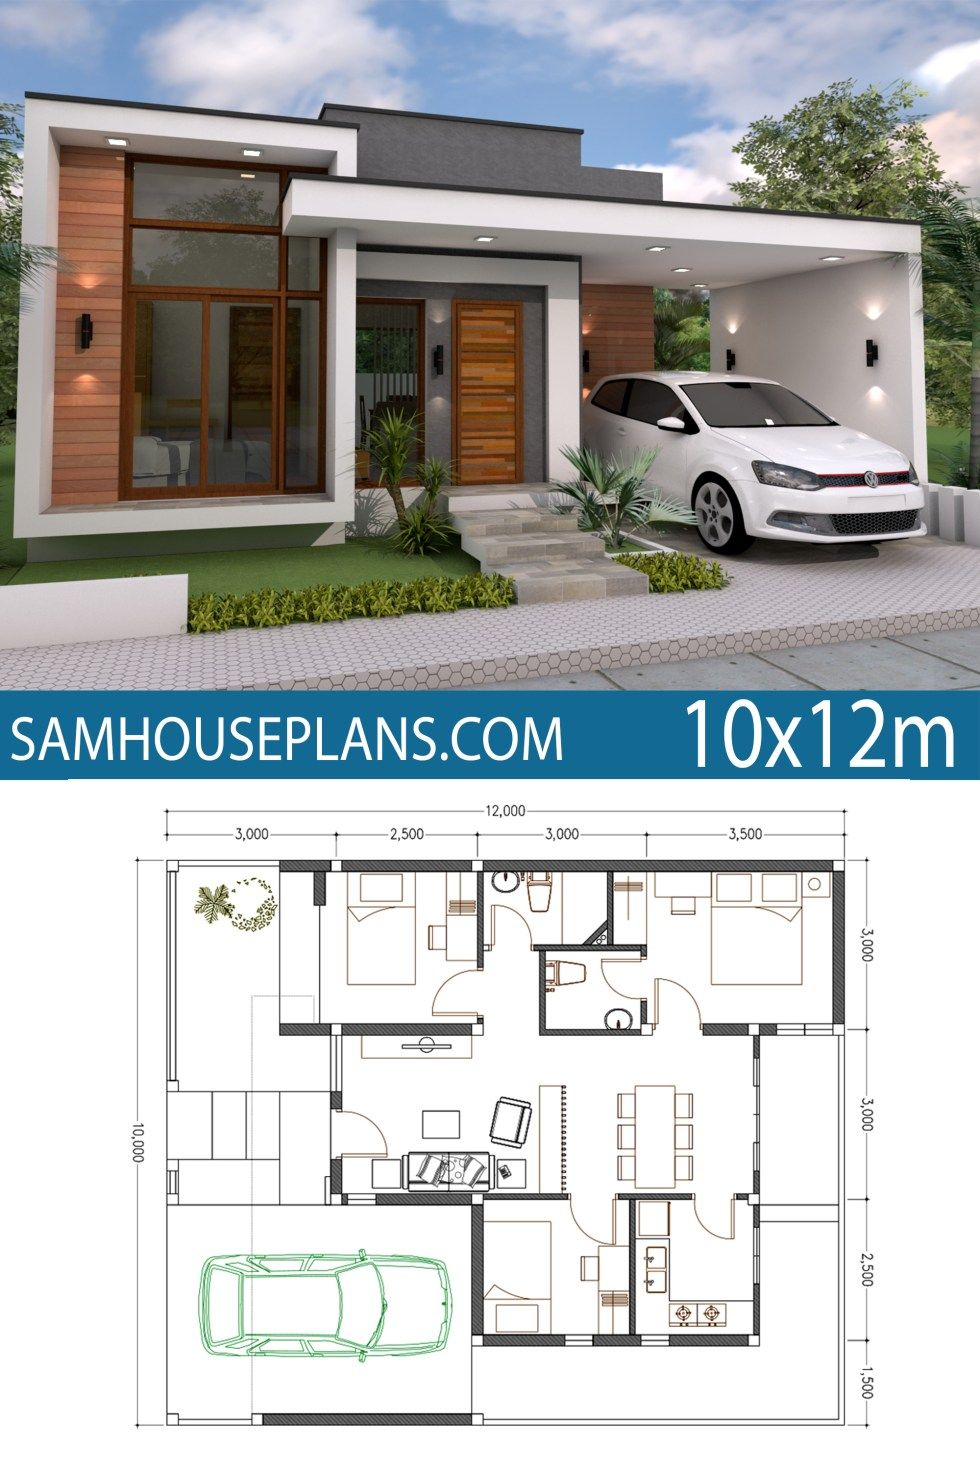 Home Plan 10x12m 3 Bedrooms Sam House Plans Simple House Design House Construction Plan Model House Plan